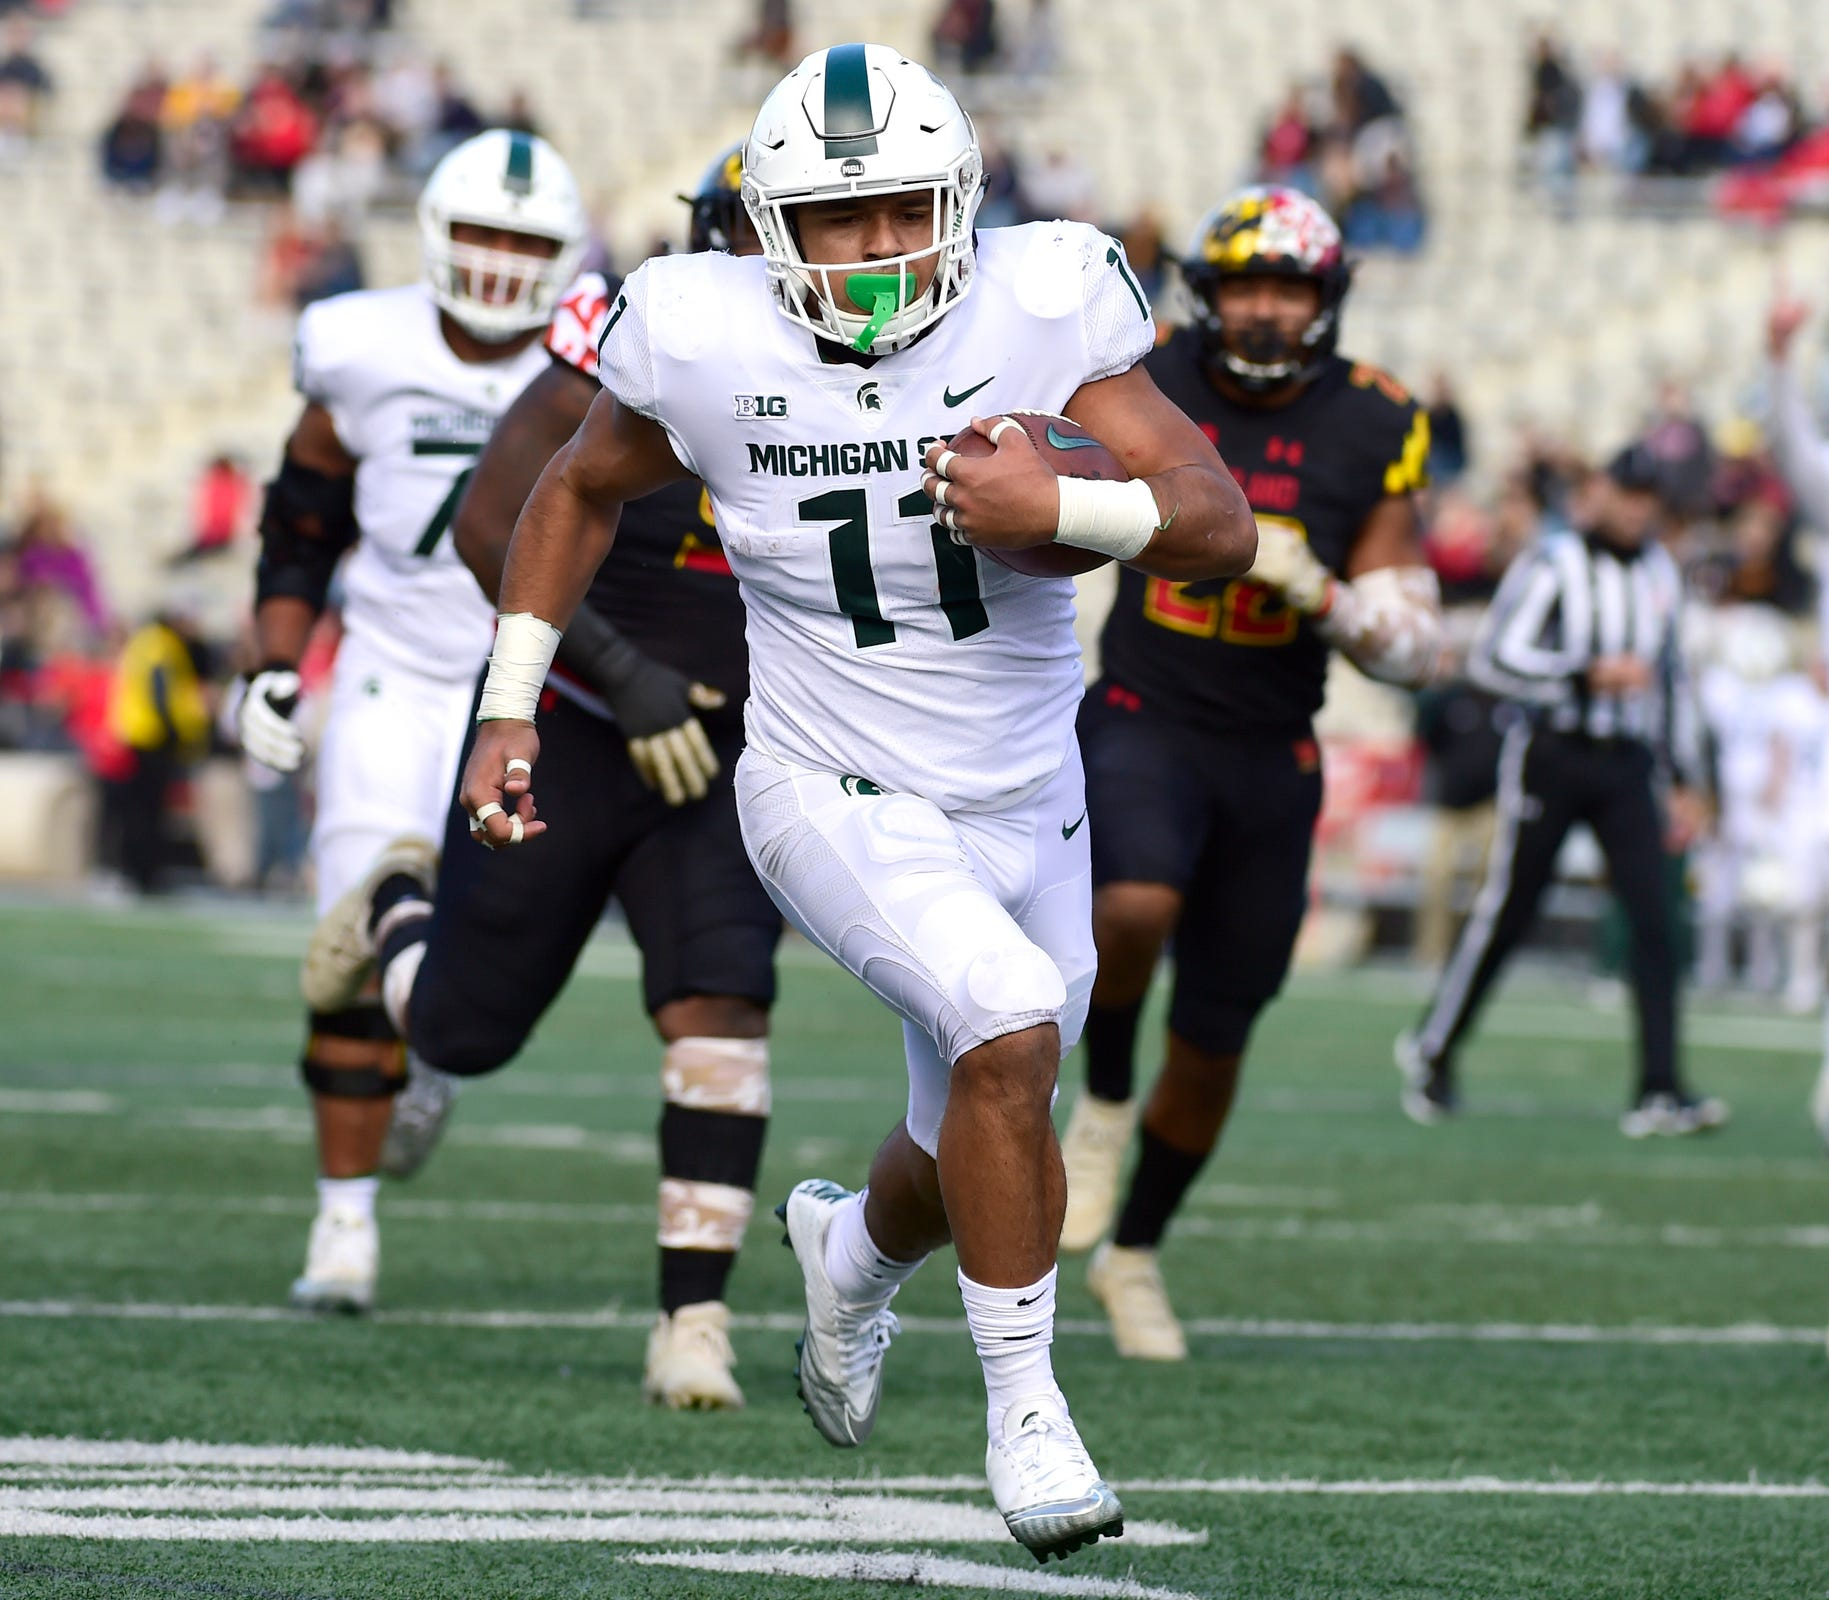 Michigan State running back Connor Heyward rushes for a touchdown during the first quarter against Maryland on Saturday, Nov. 3, 2018, at Capital One Field at Maryland Stadium.